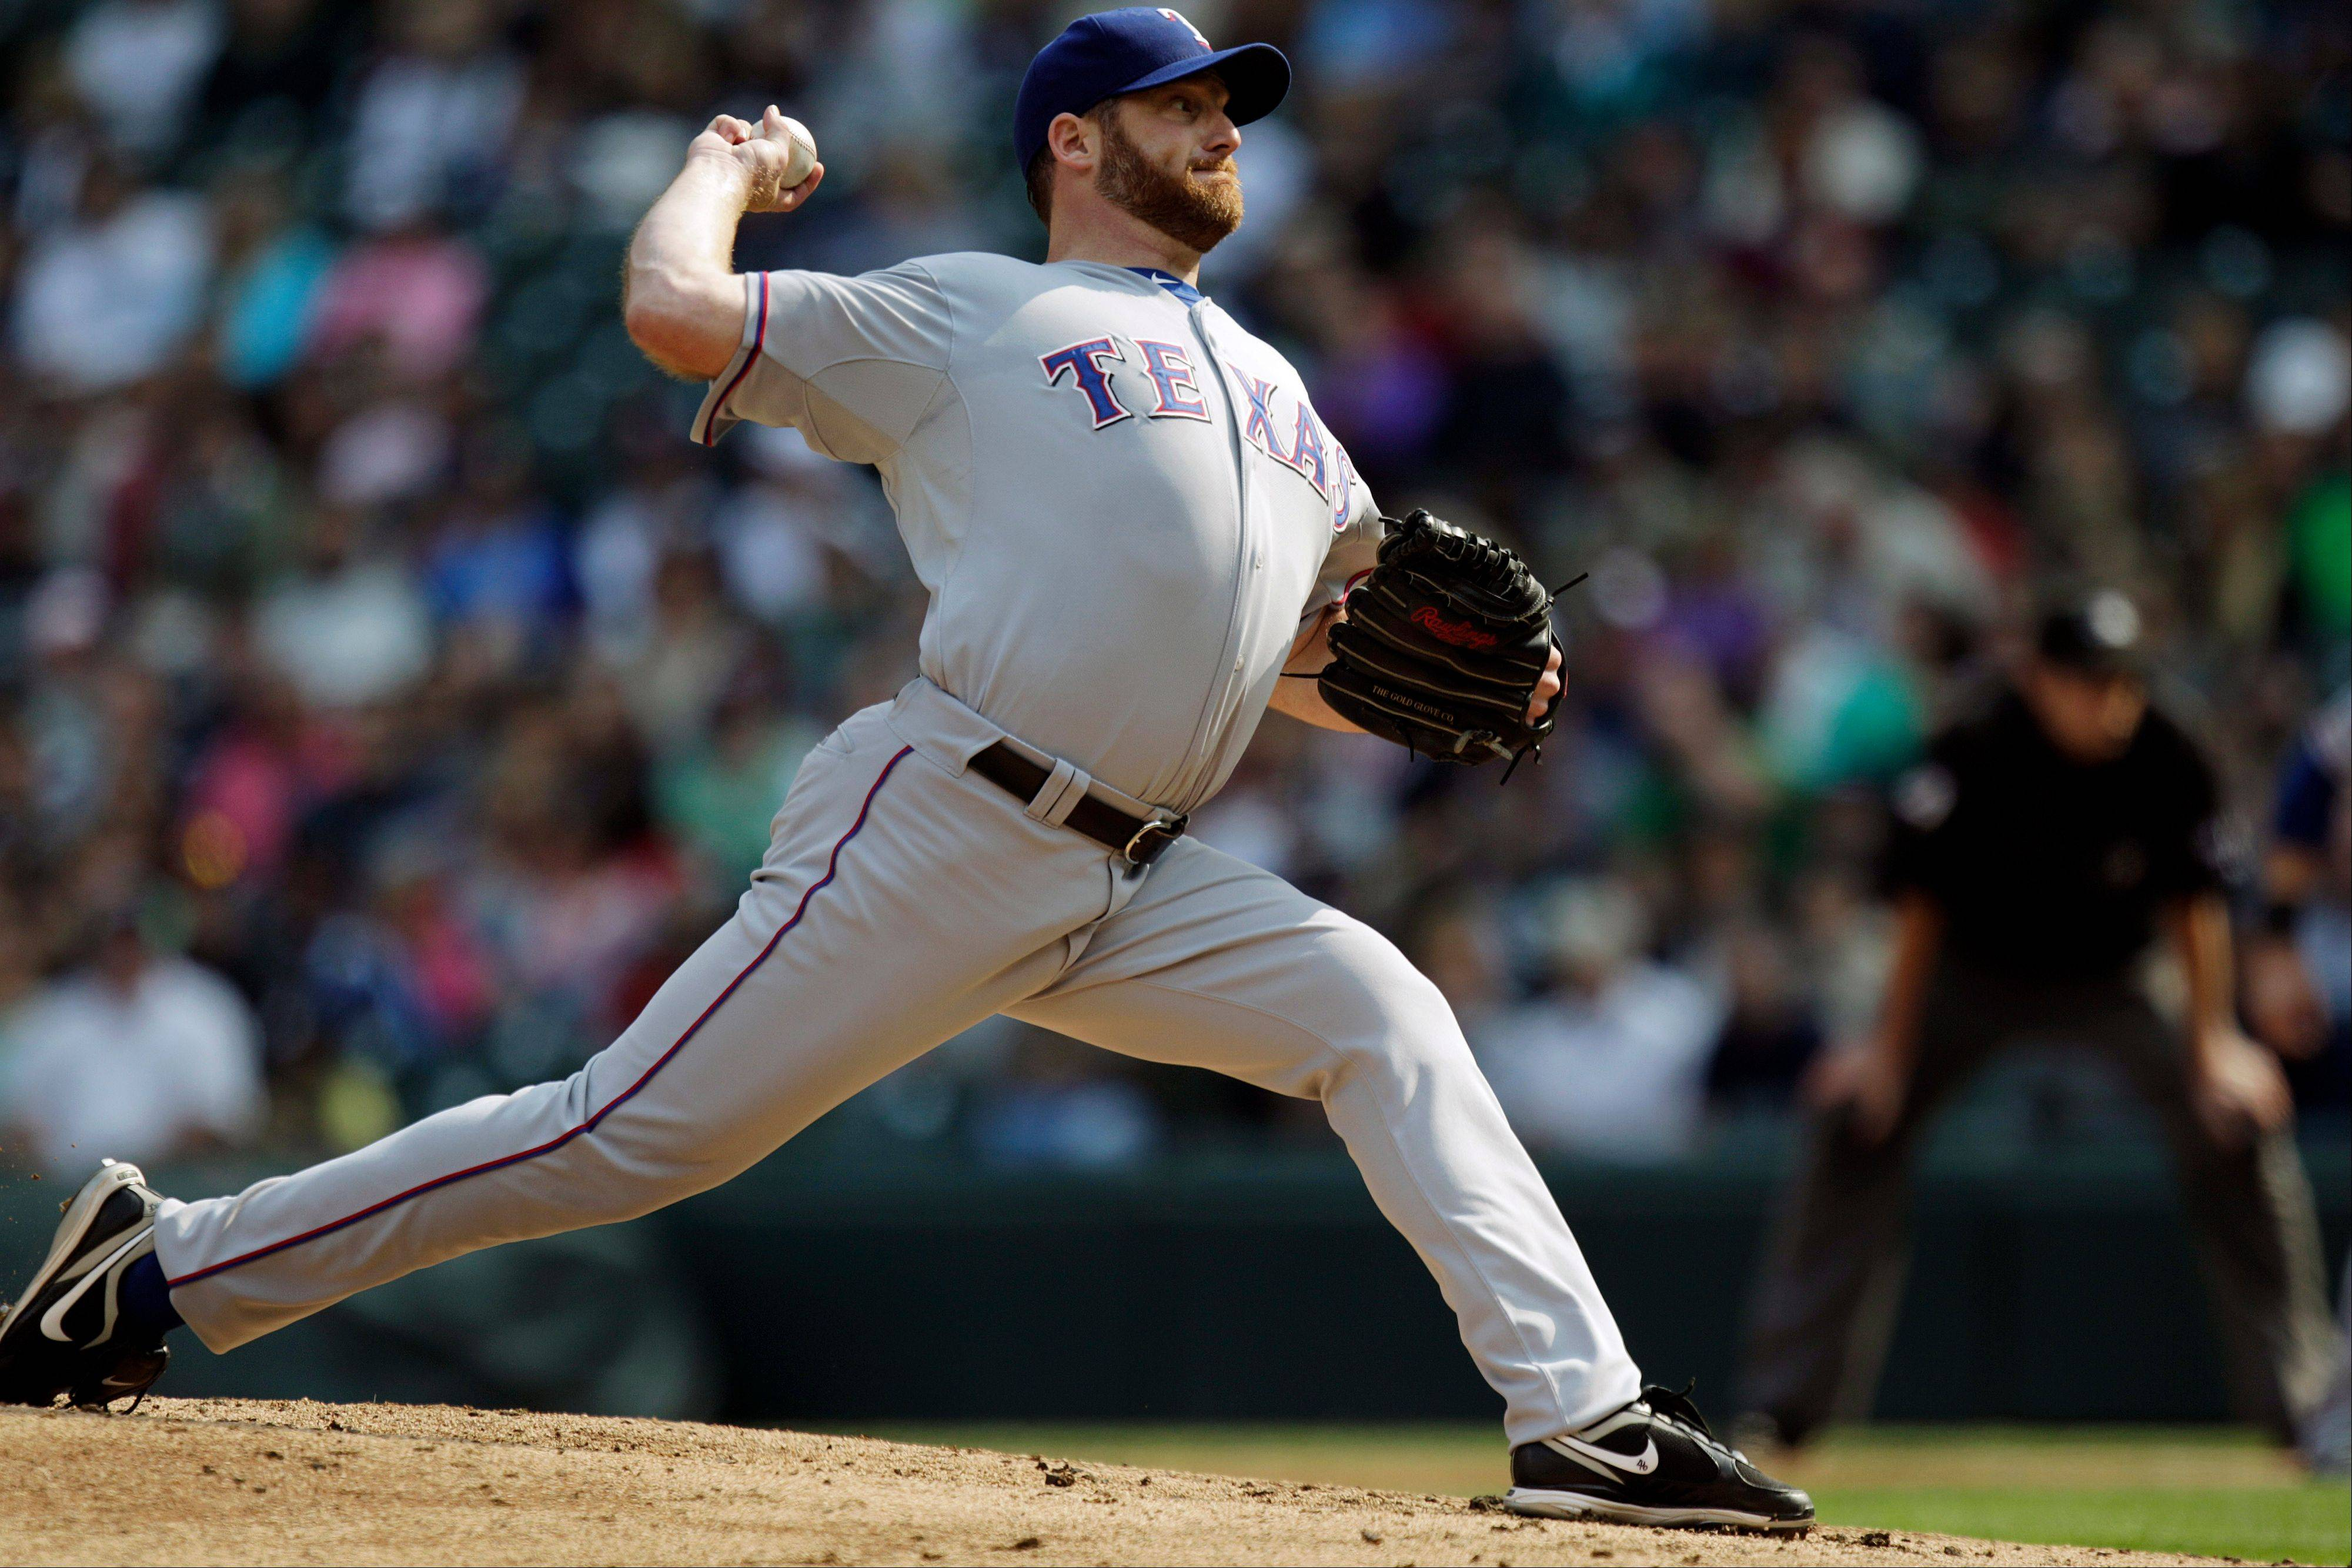 Texas Rangers starting pitcher Ryan Dempster struck out eight Sunday in a road win over Seattle.